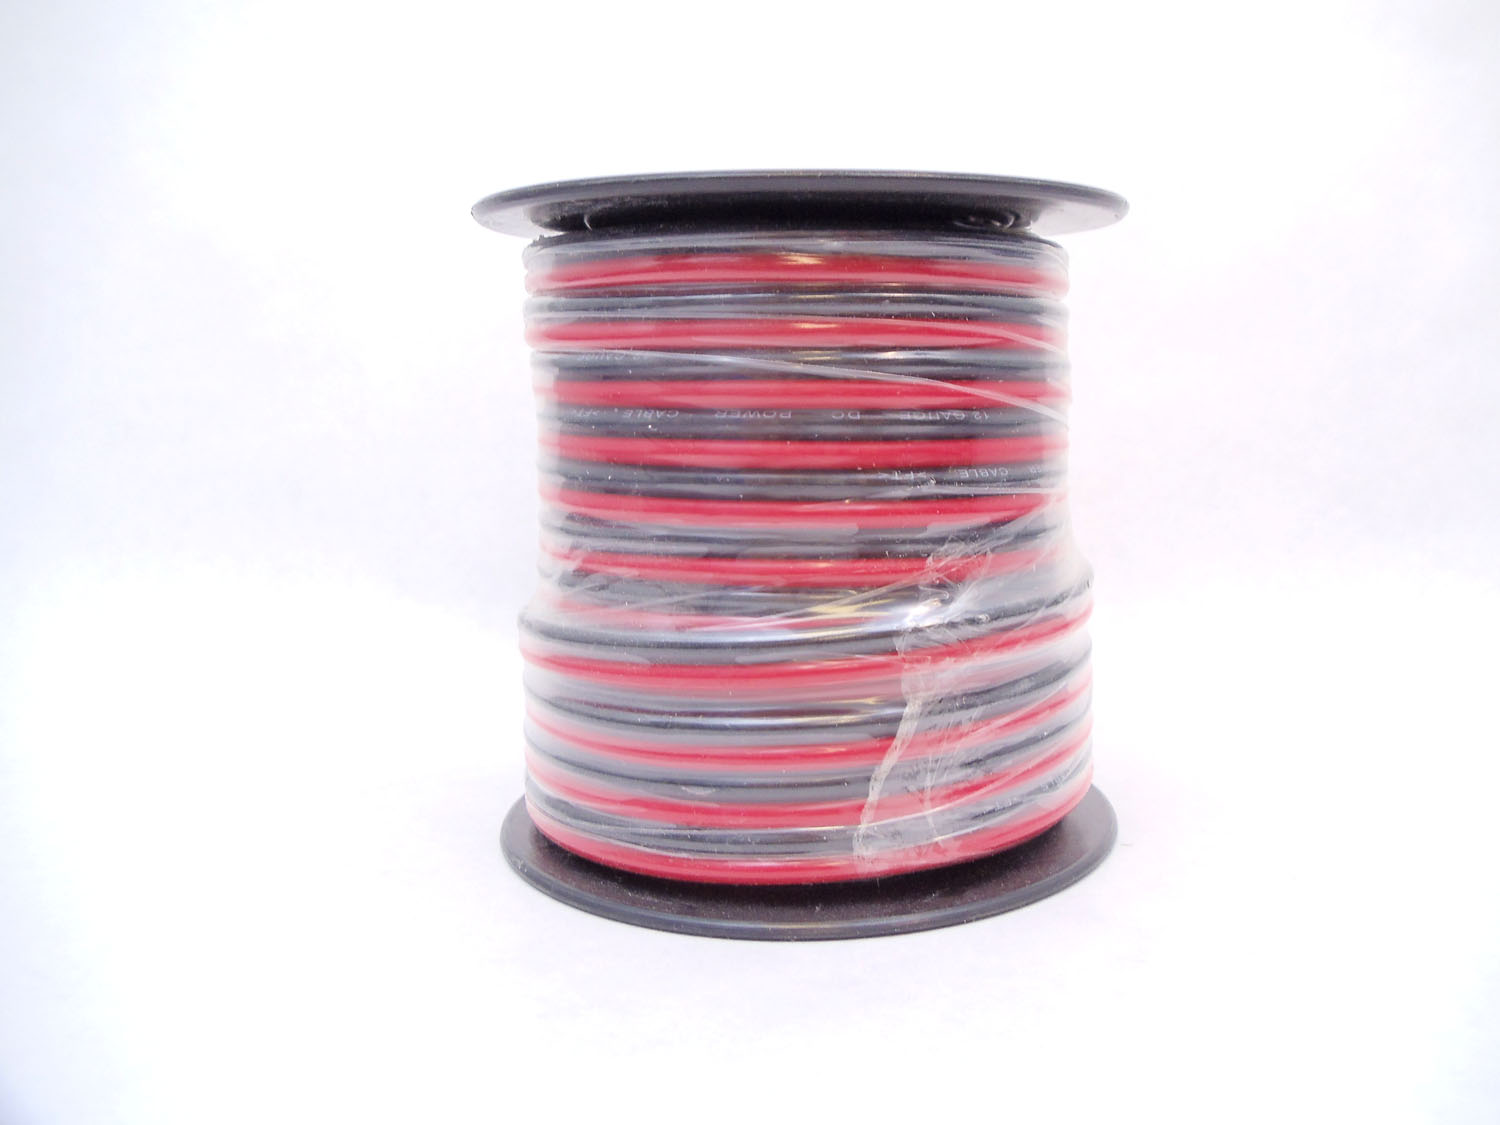 12 GAUGE ZIP WIRE (RED/BLACK) 50 FT SPOOL